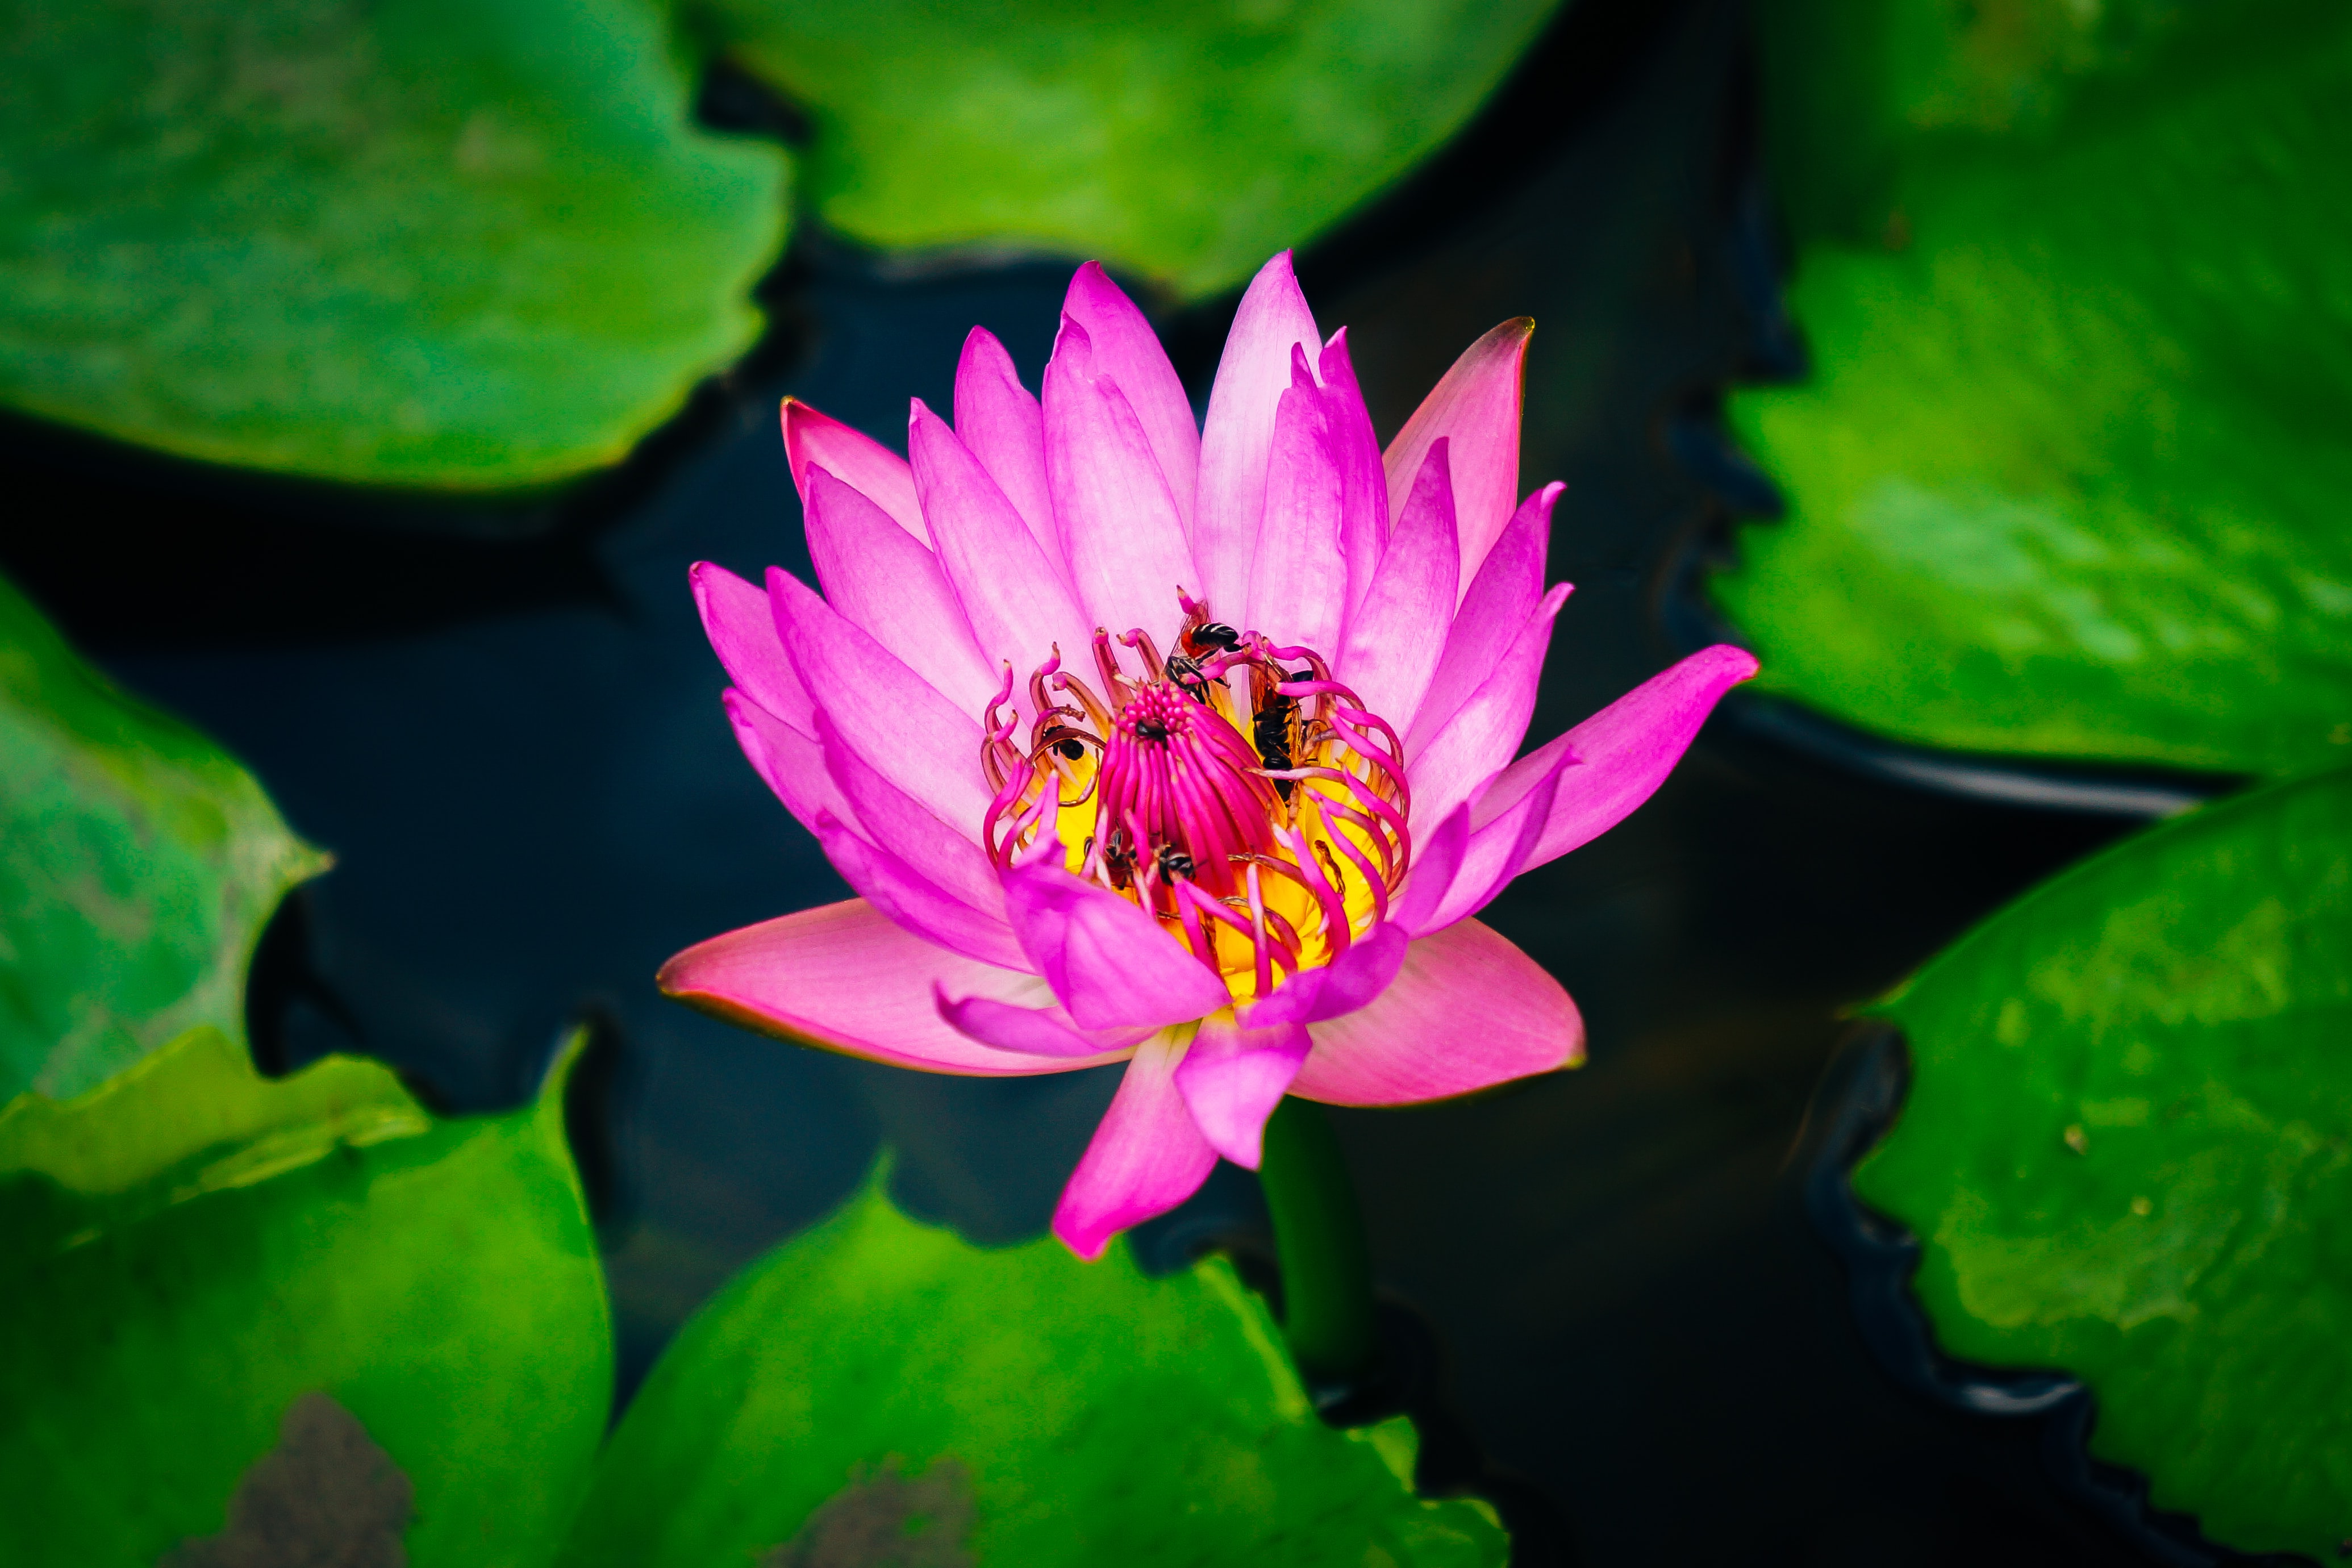 Several bees gathering pollen in a pink water lily